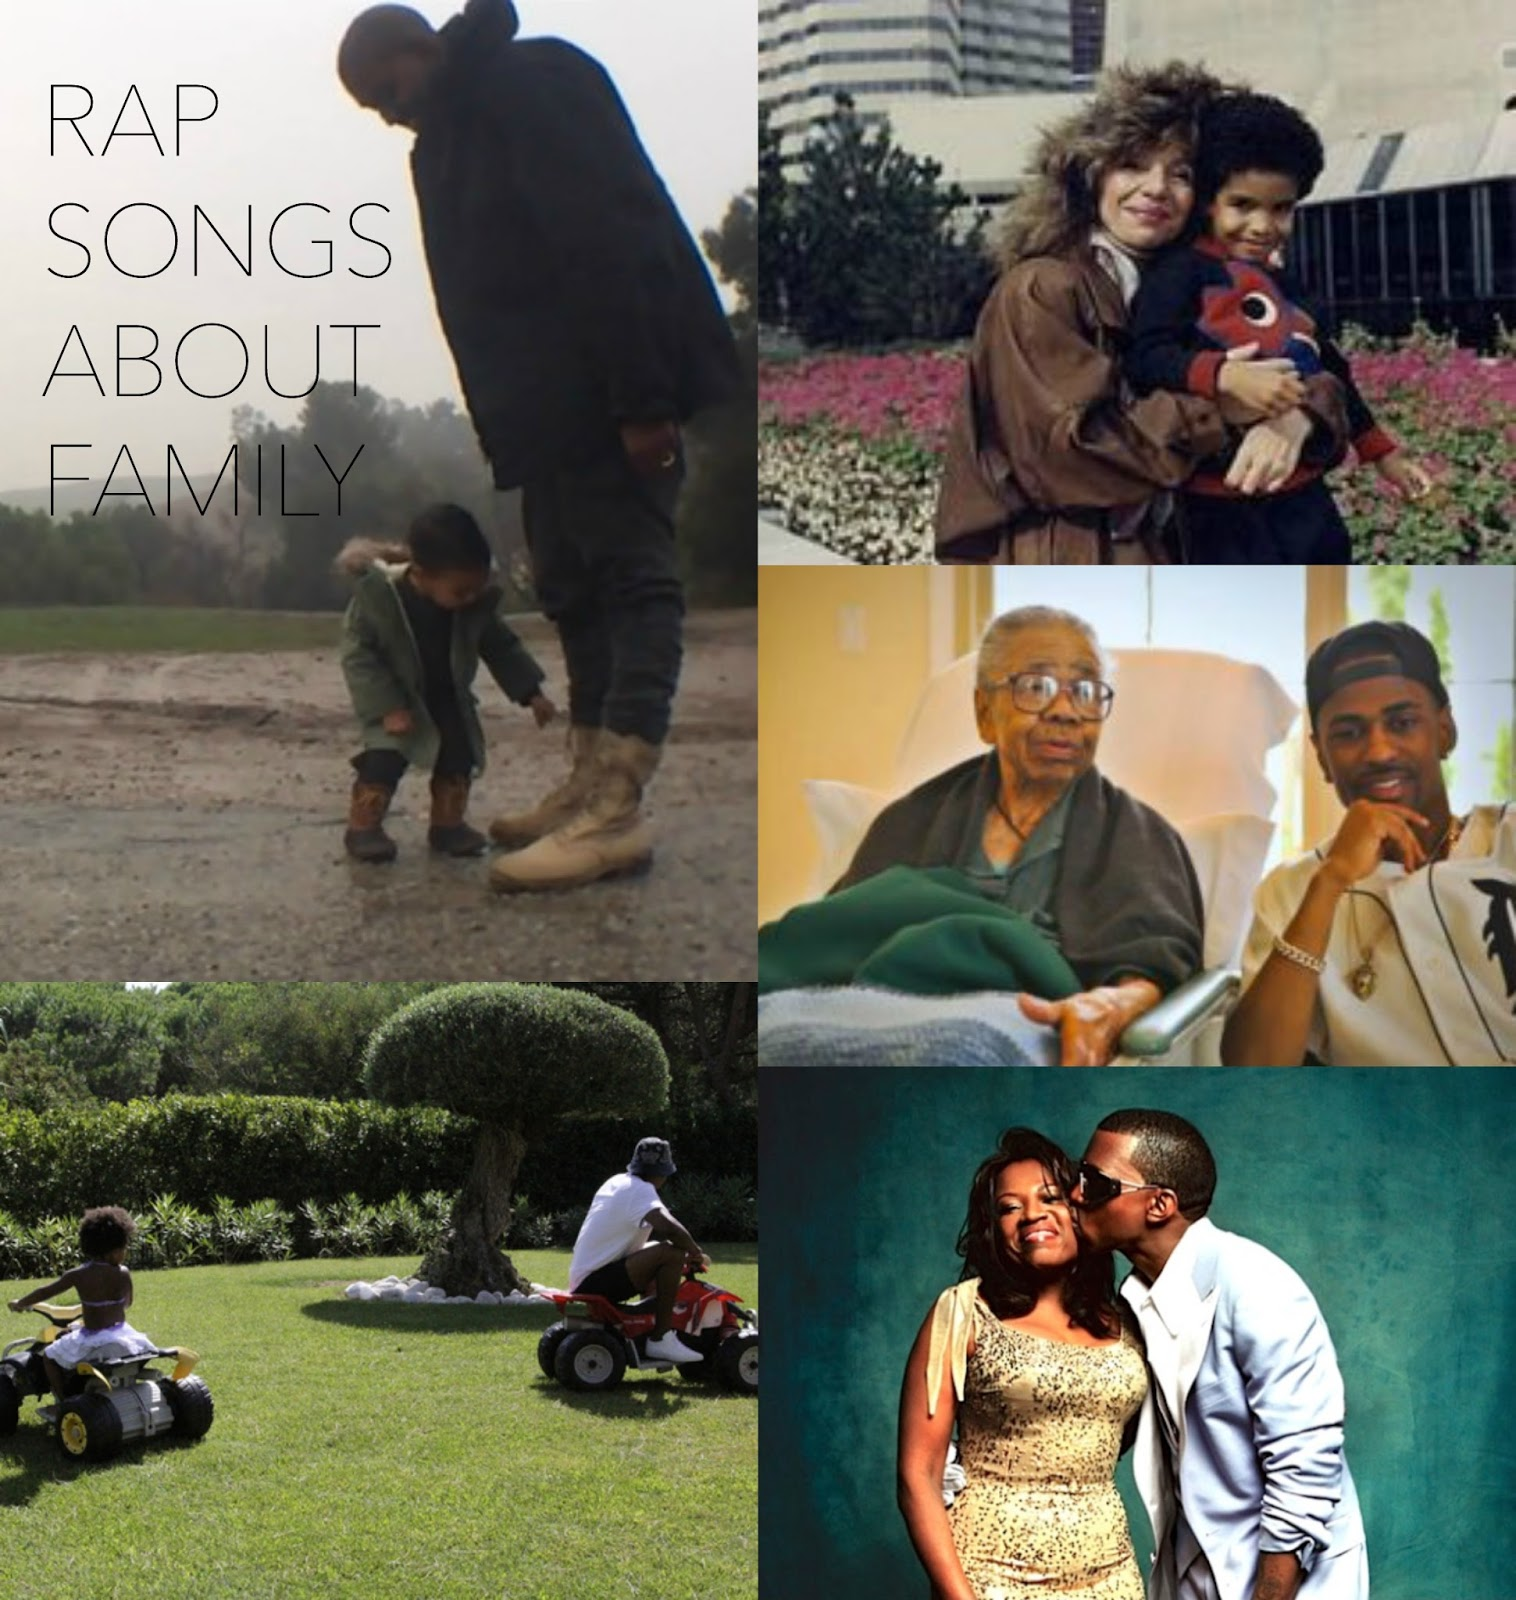 My Favorite Hip-Hop Family Songs - Family Love In My City | 1516 x 1600 jpeg 344kB